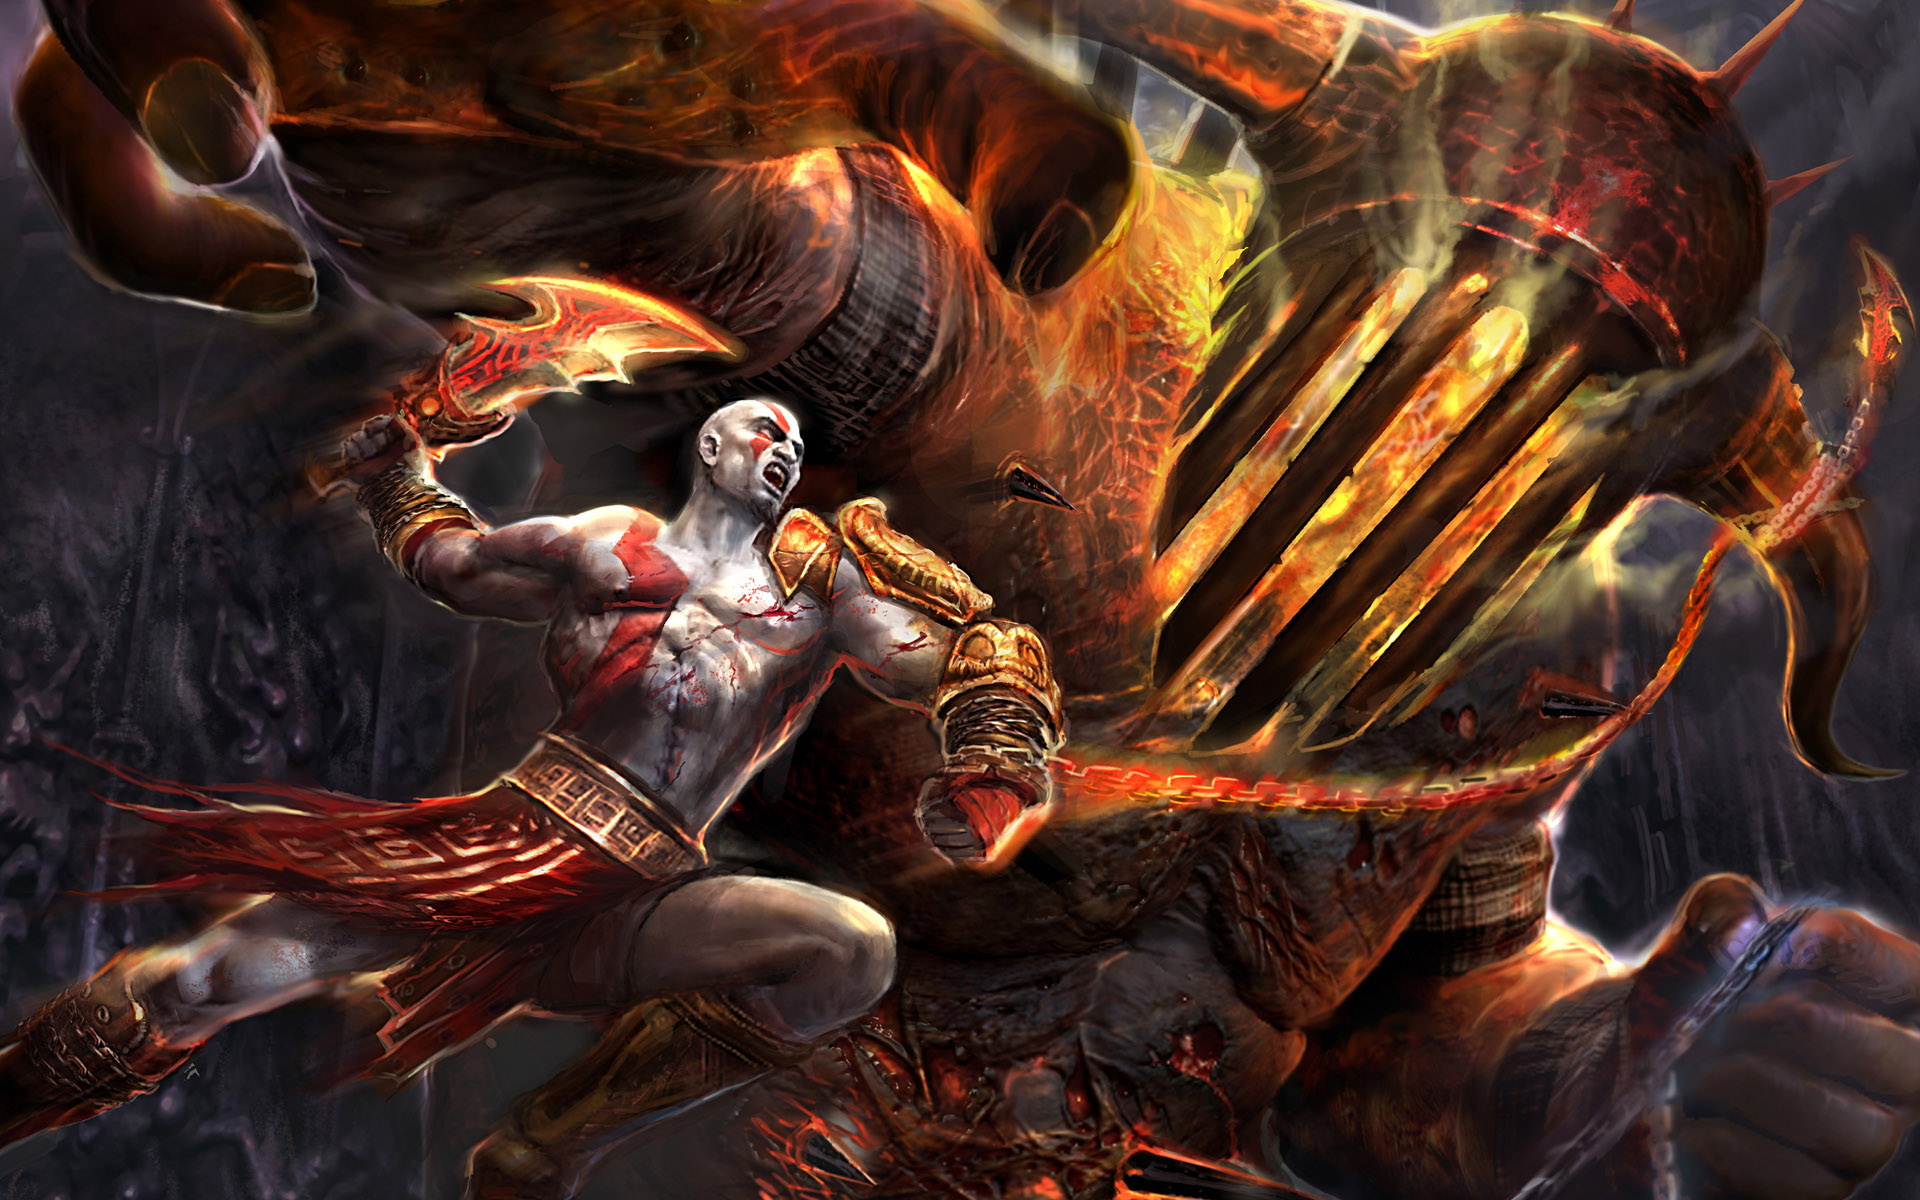 God Of War HD Wallpapers In Jpg Format For Free